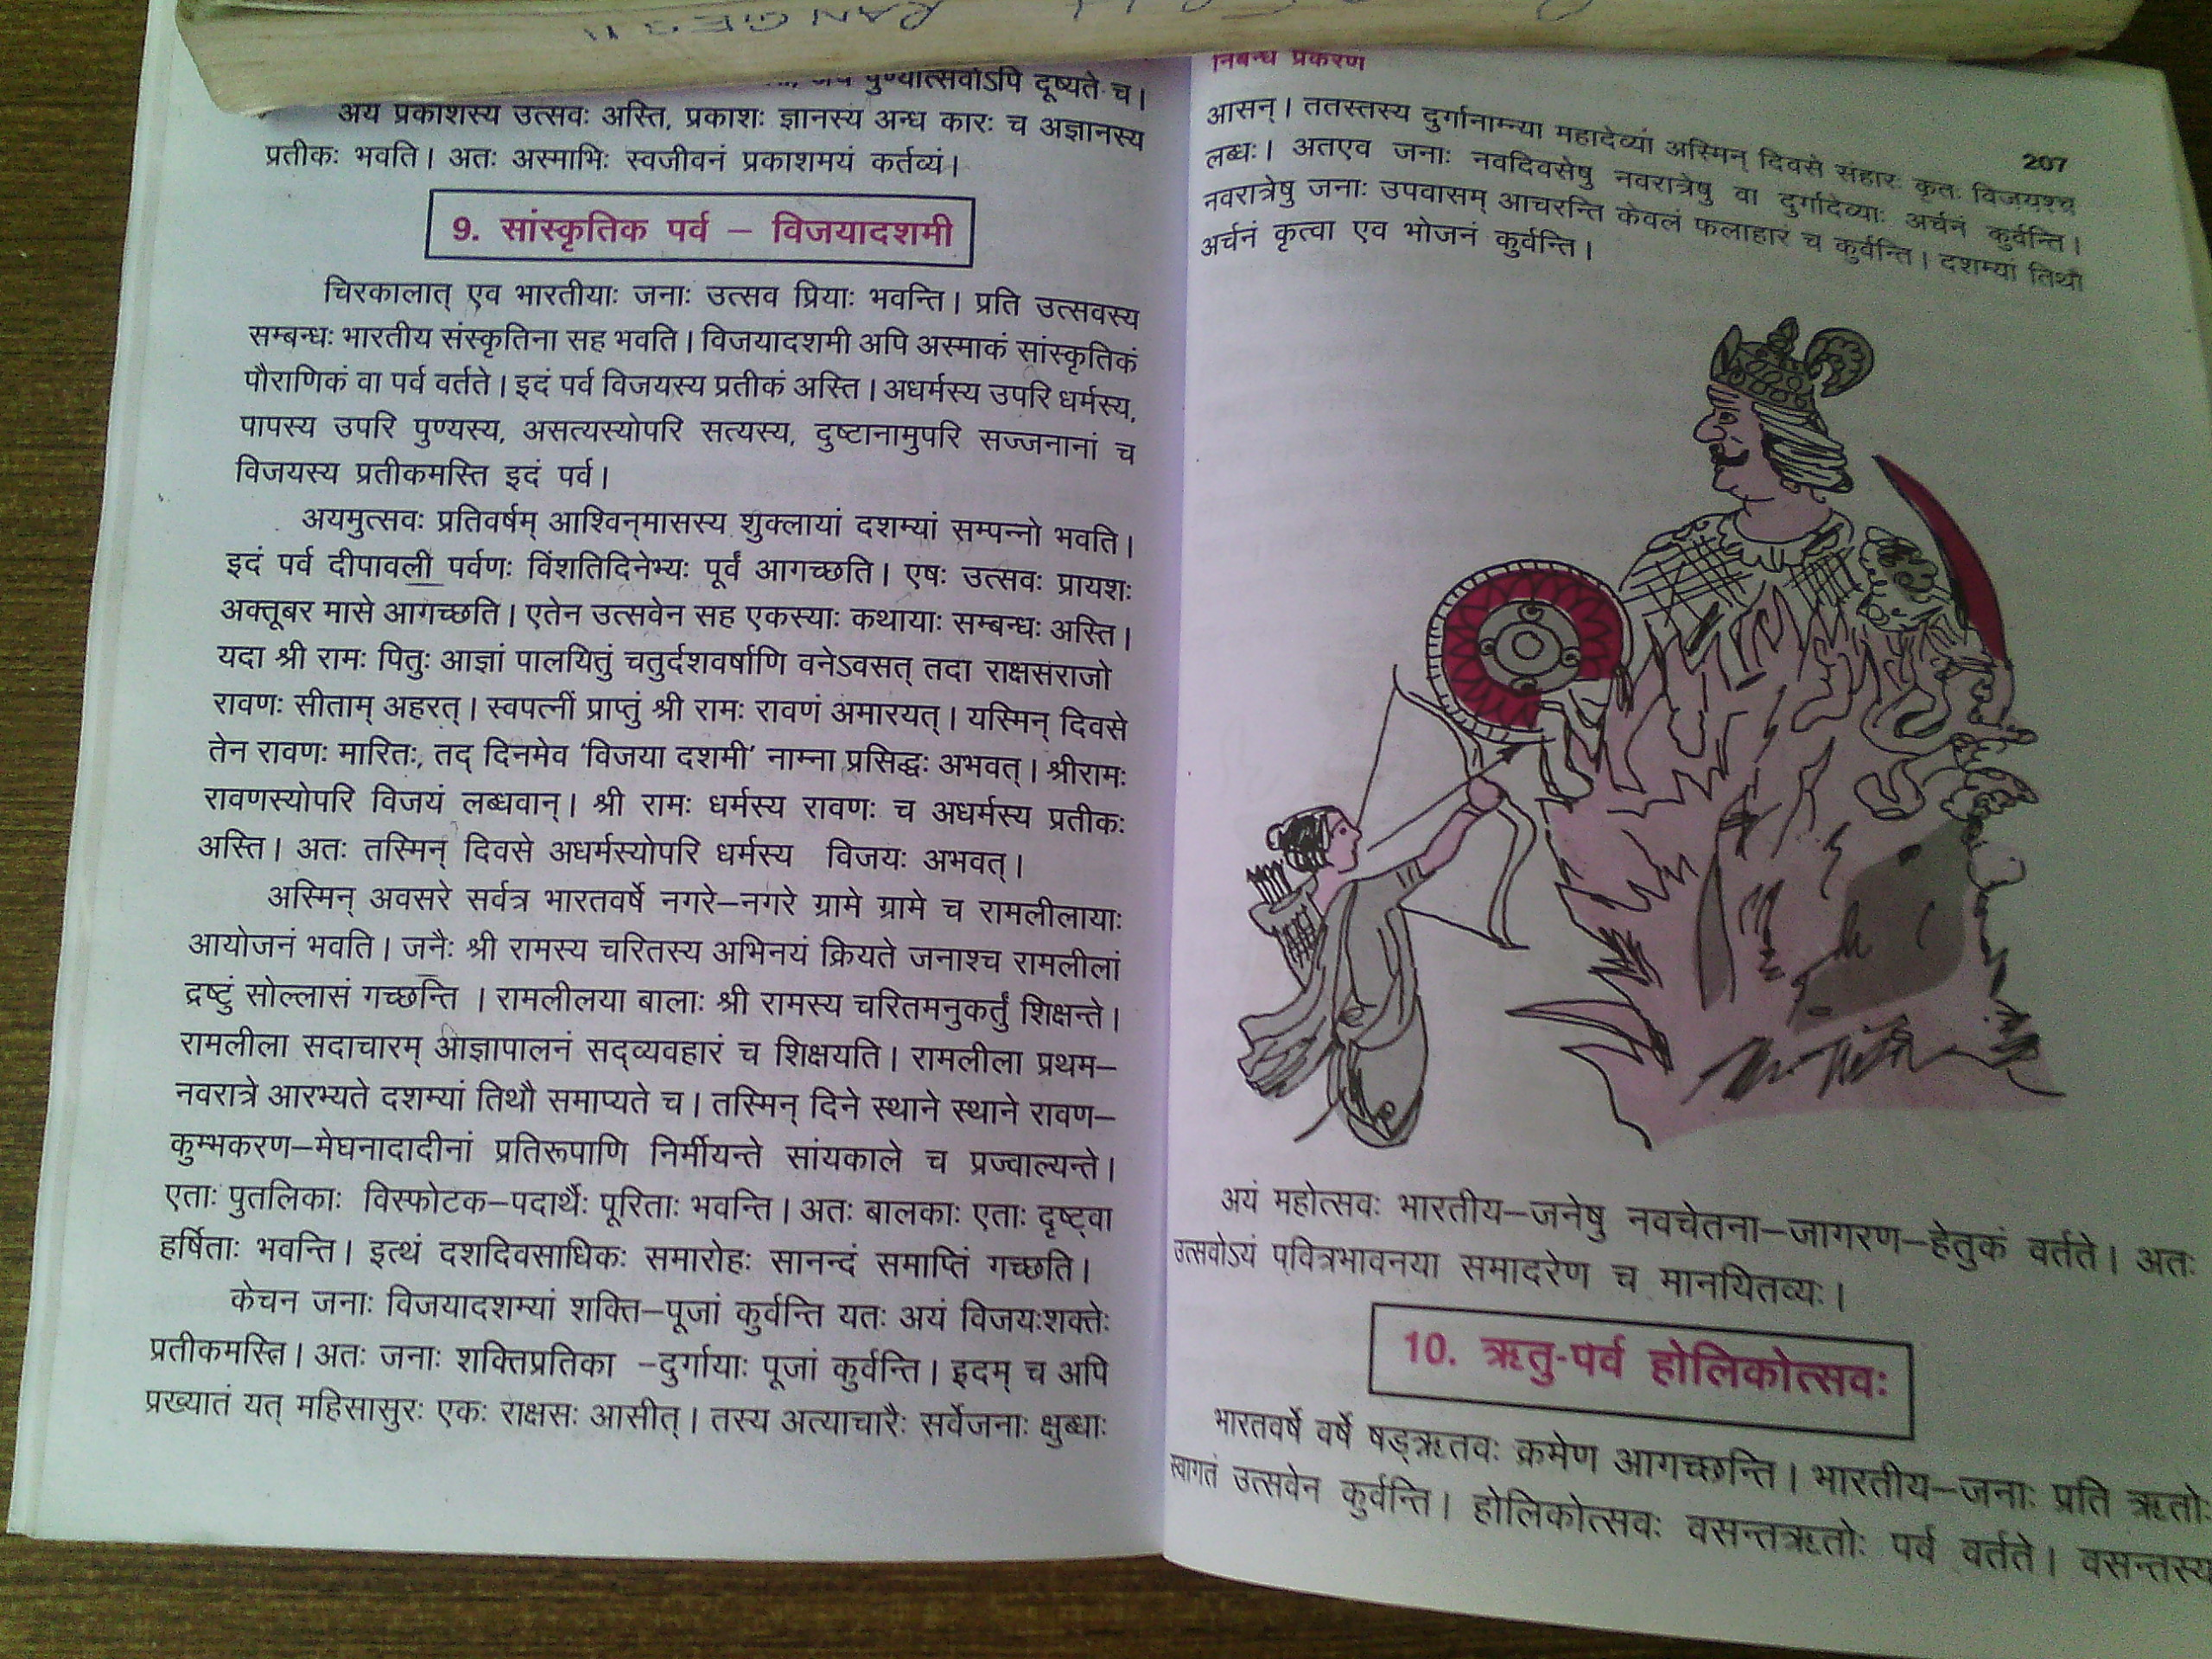 015 Essay On Dussehra Festival In English Surprising Full